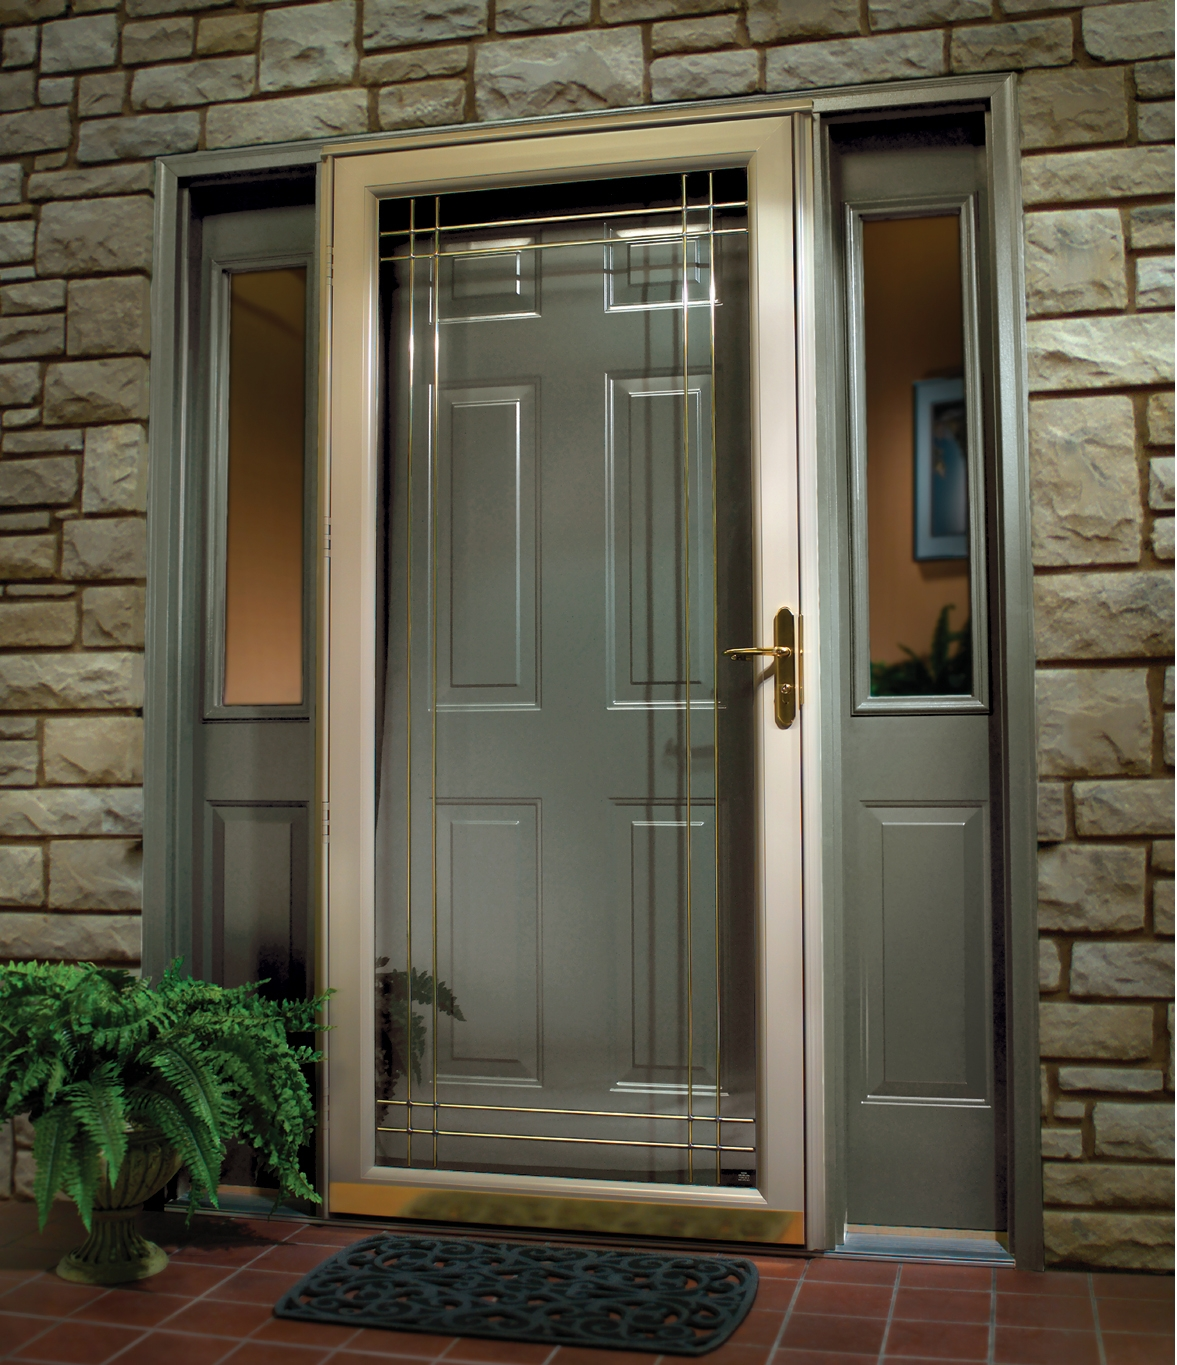 sd a allied to lone door facts or palm buying screen doors before agc know storm